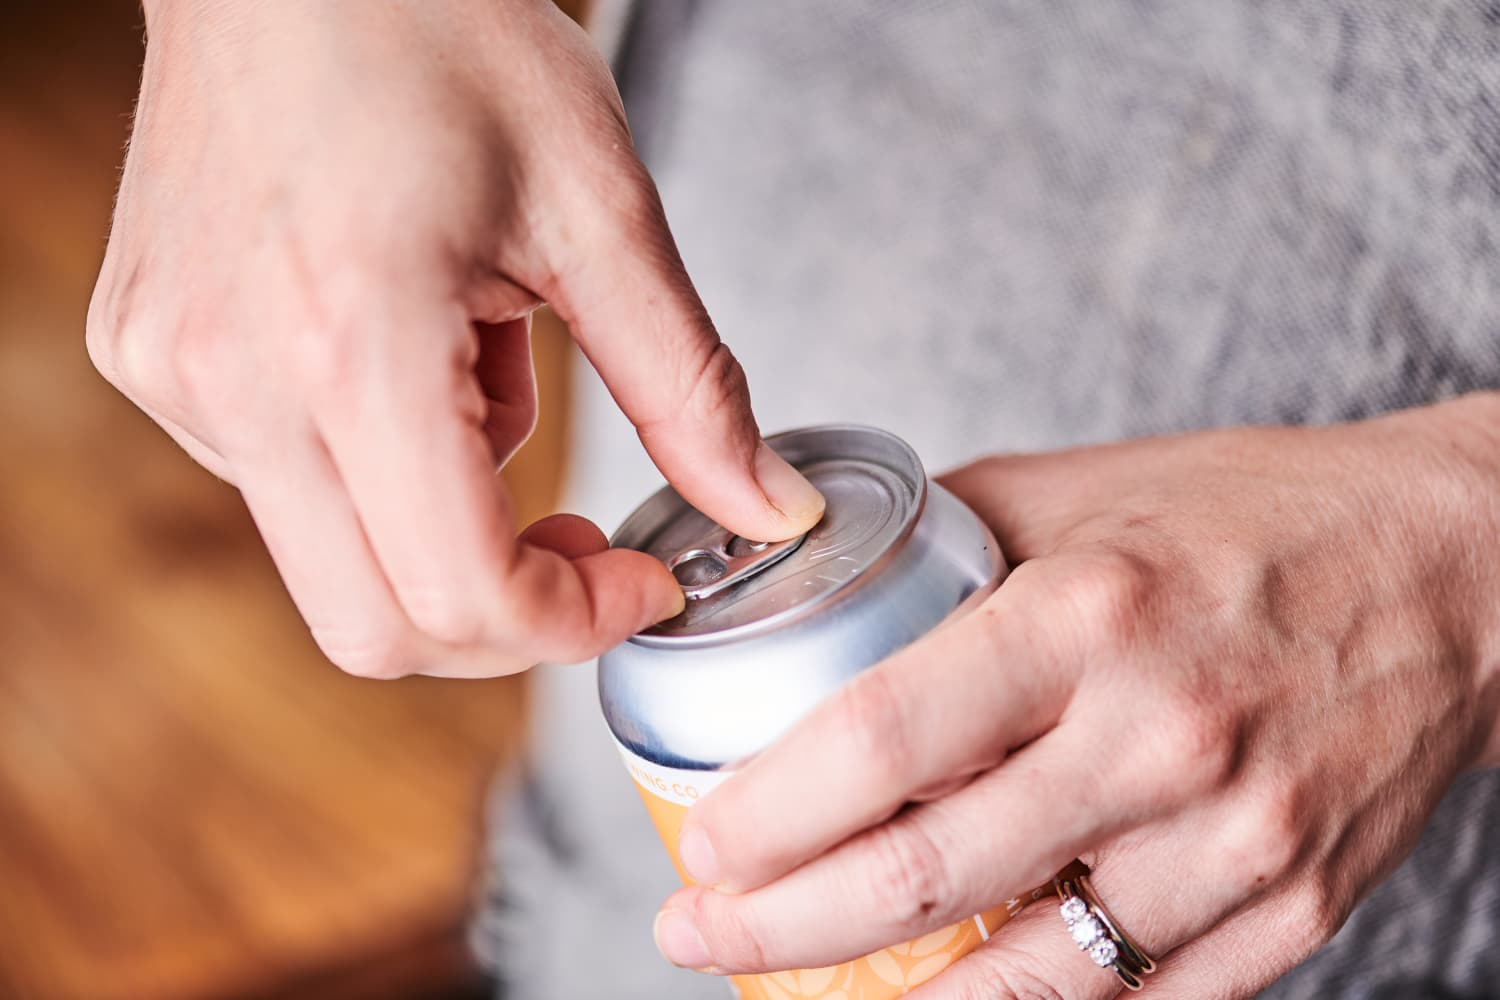 Is It Gross to Drink Out of a Can Without Washing It First? We Asked an Expert.